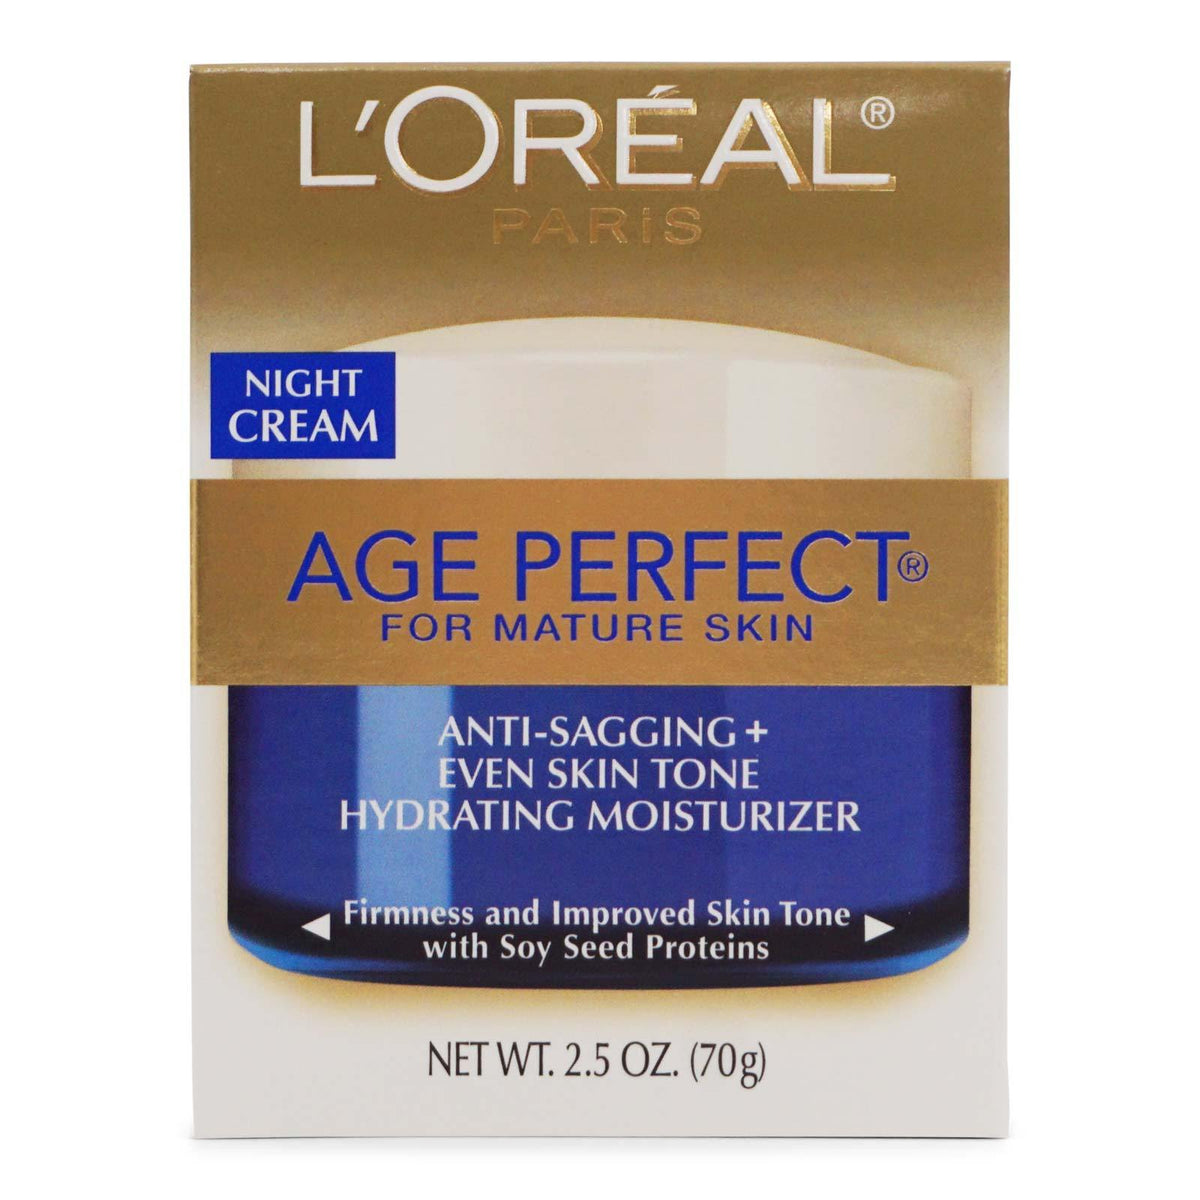 L'Oreal Skin Care Age Perfect Night Cream-Face Moisturizer (2.5oz/70g) (12/cs)